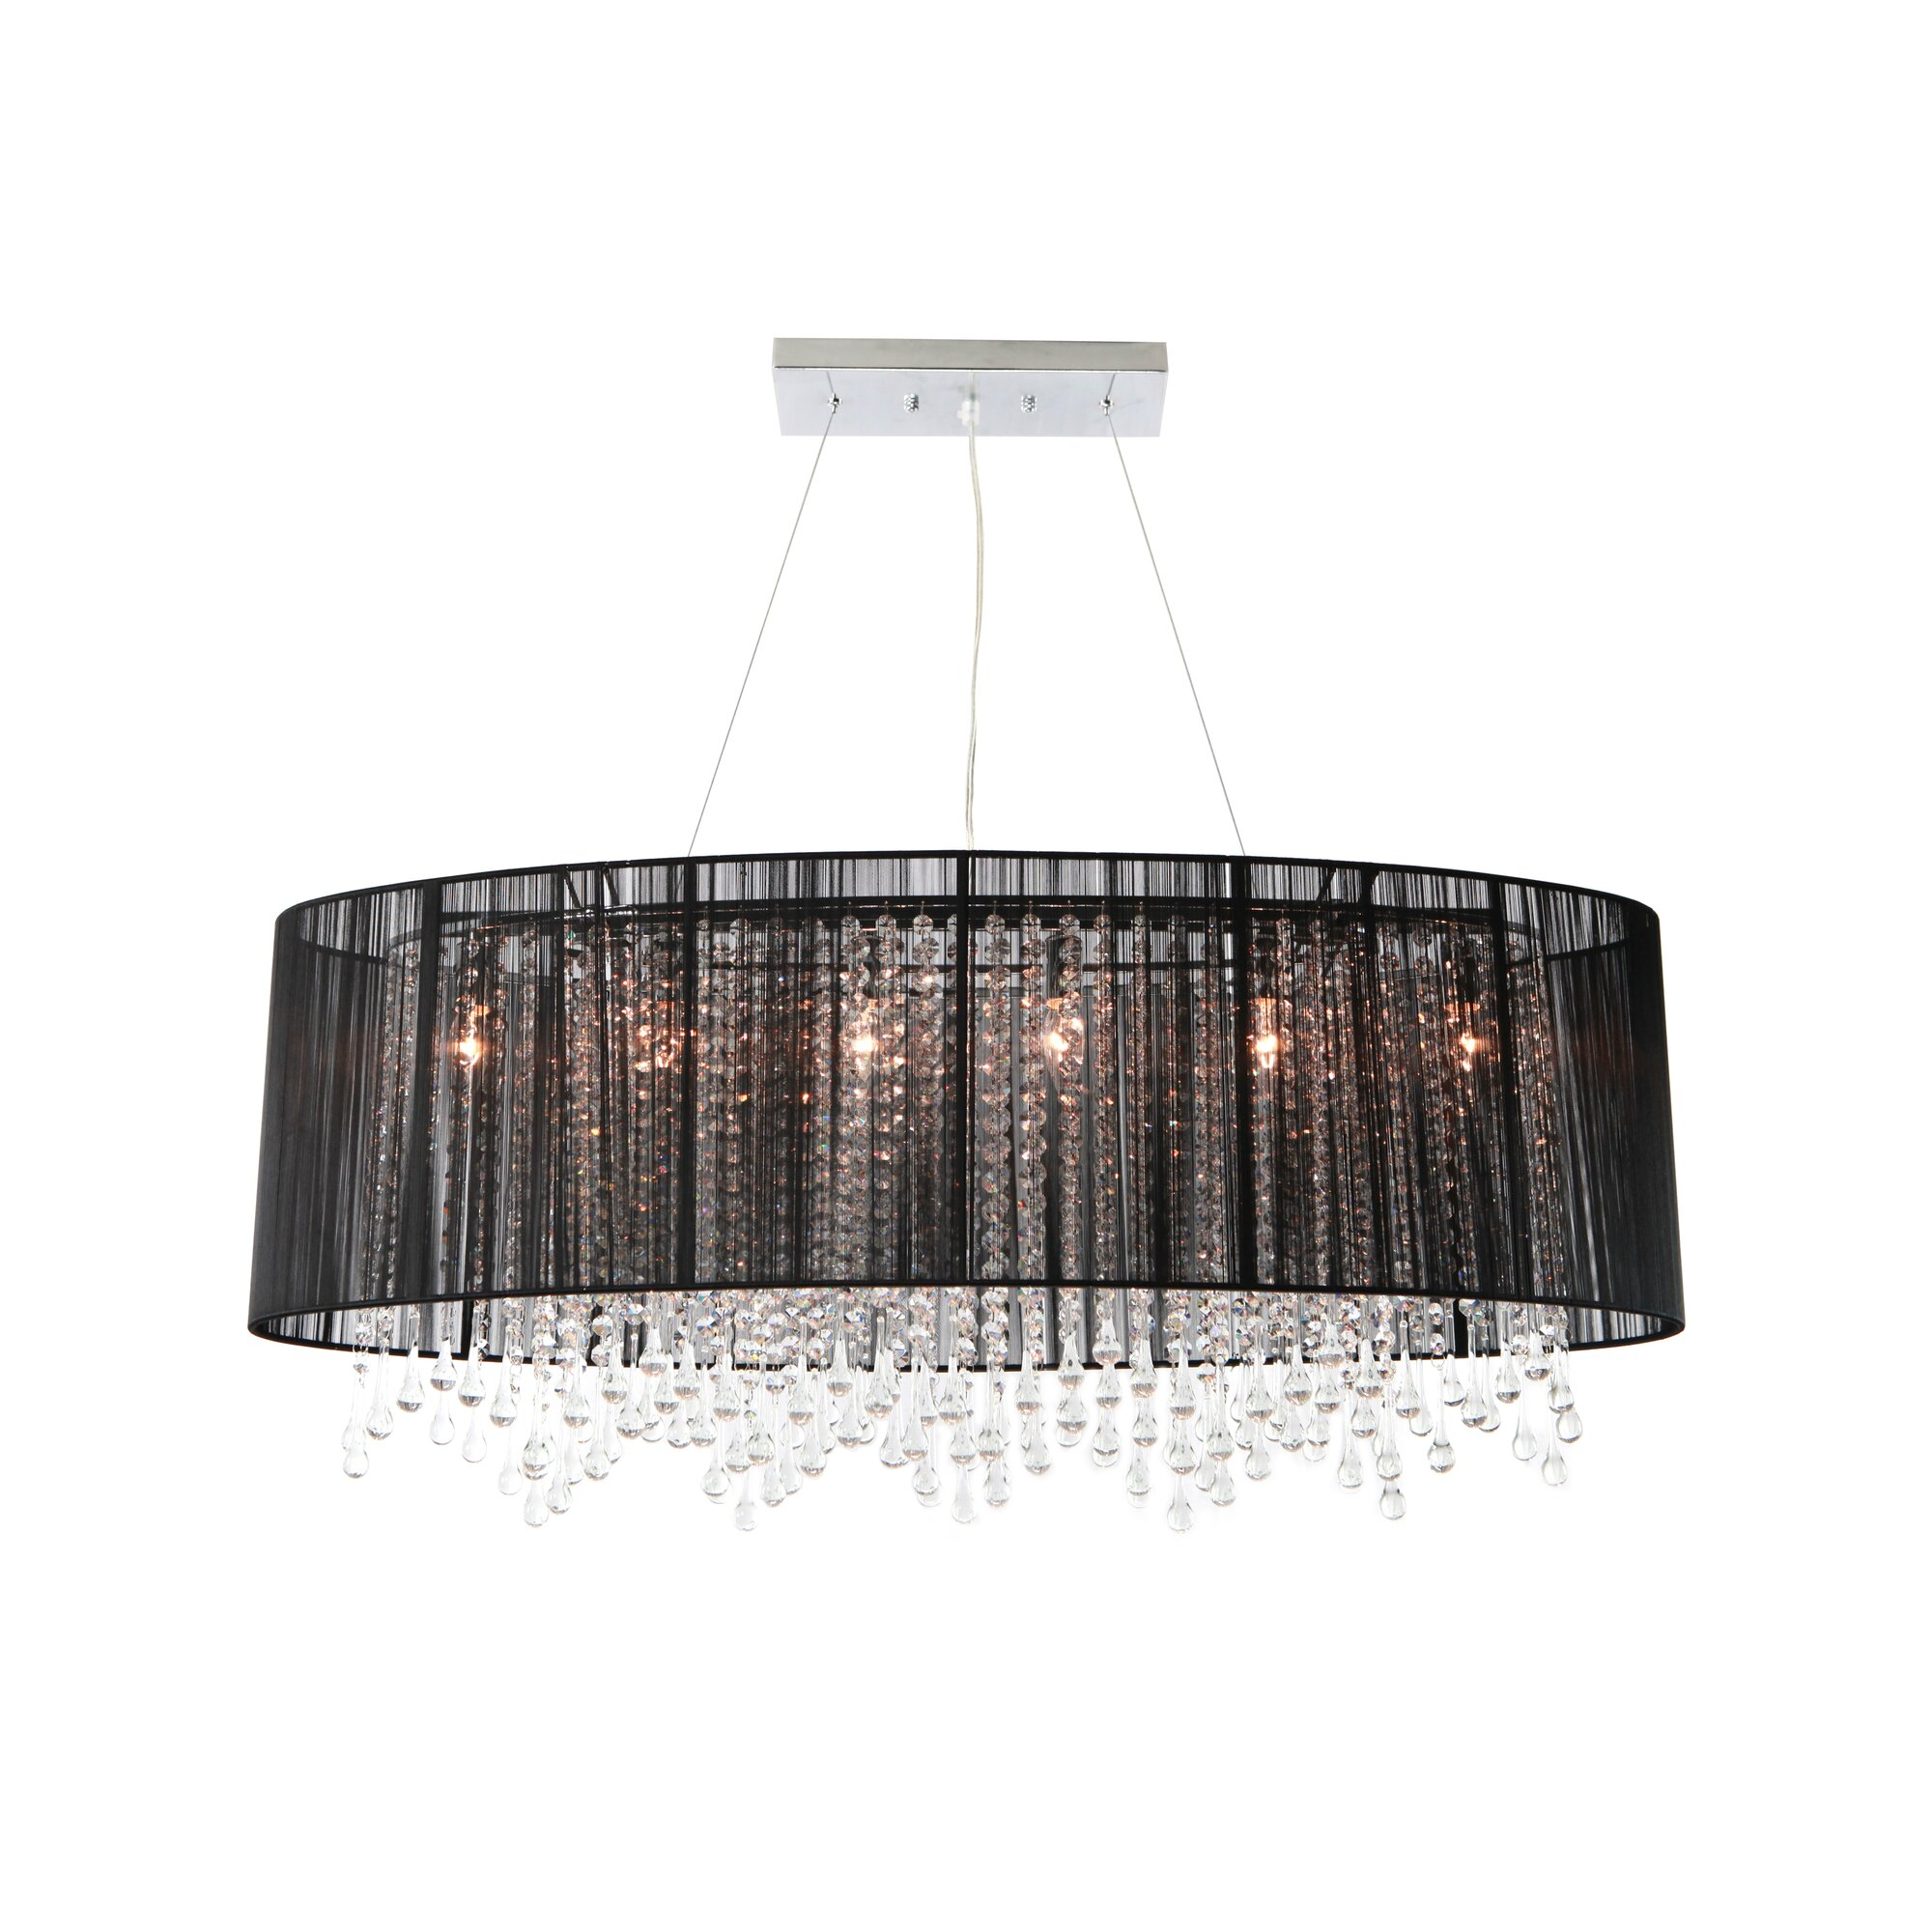 Avenue Lighting Beverly Drive Light Kitchen Island Pendant -  fort lauderdale bathroom mirror light